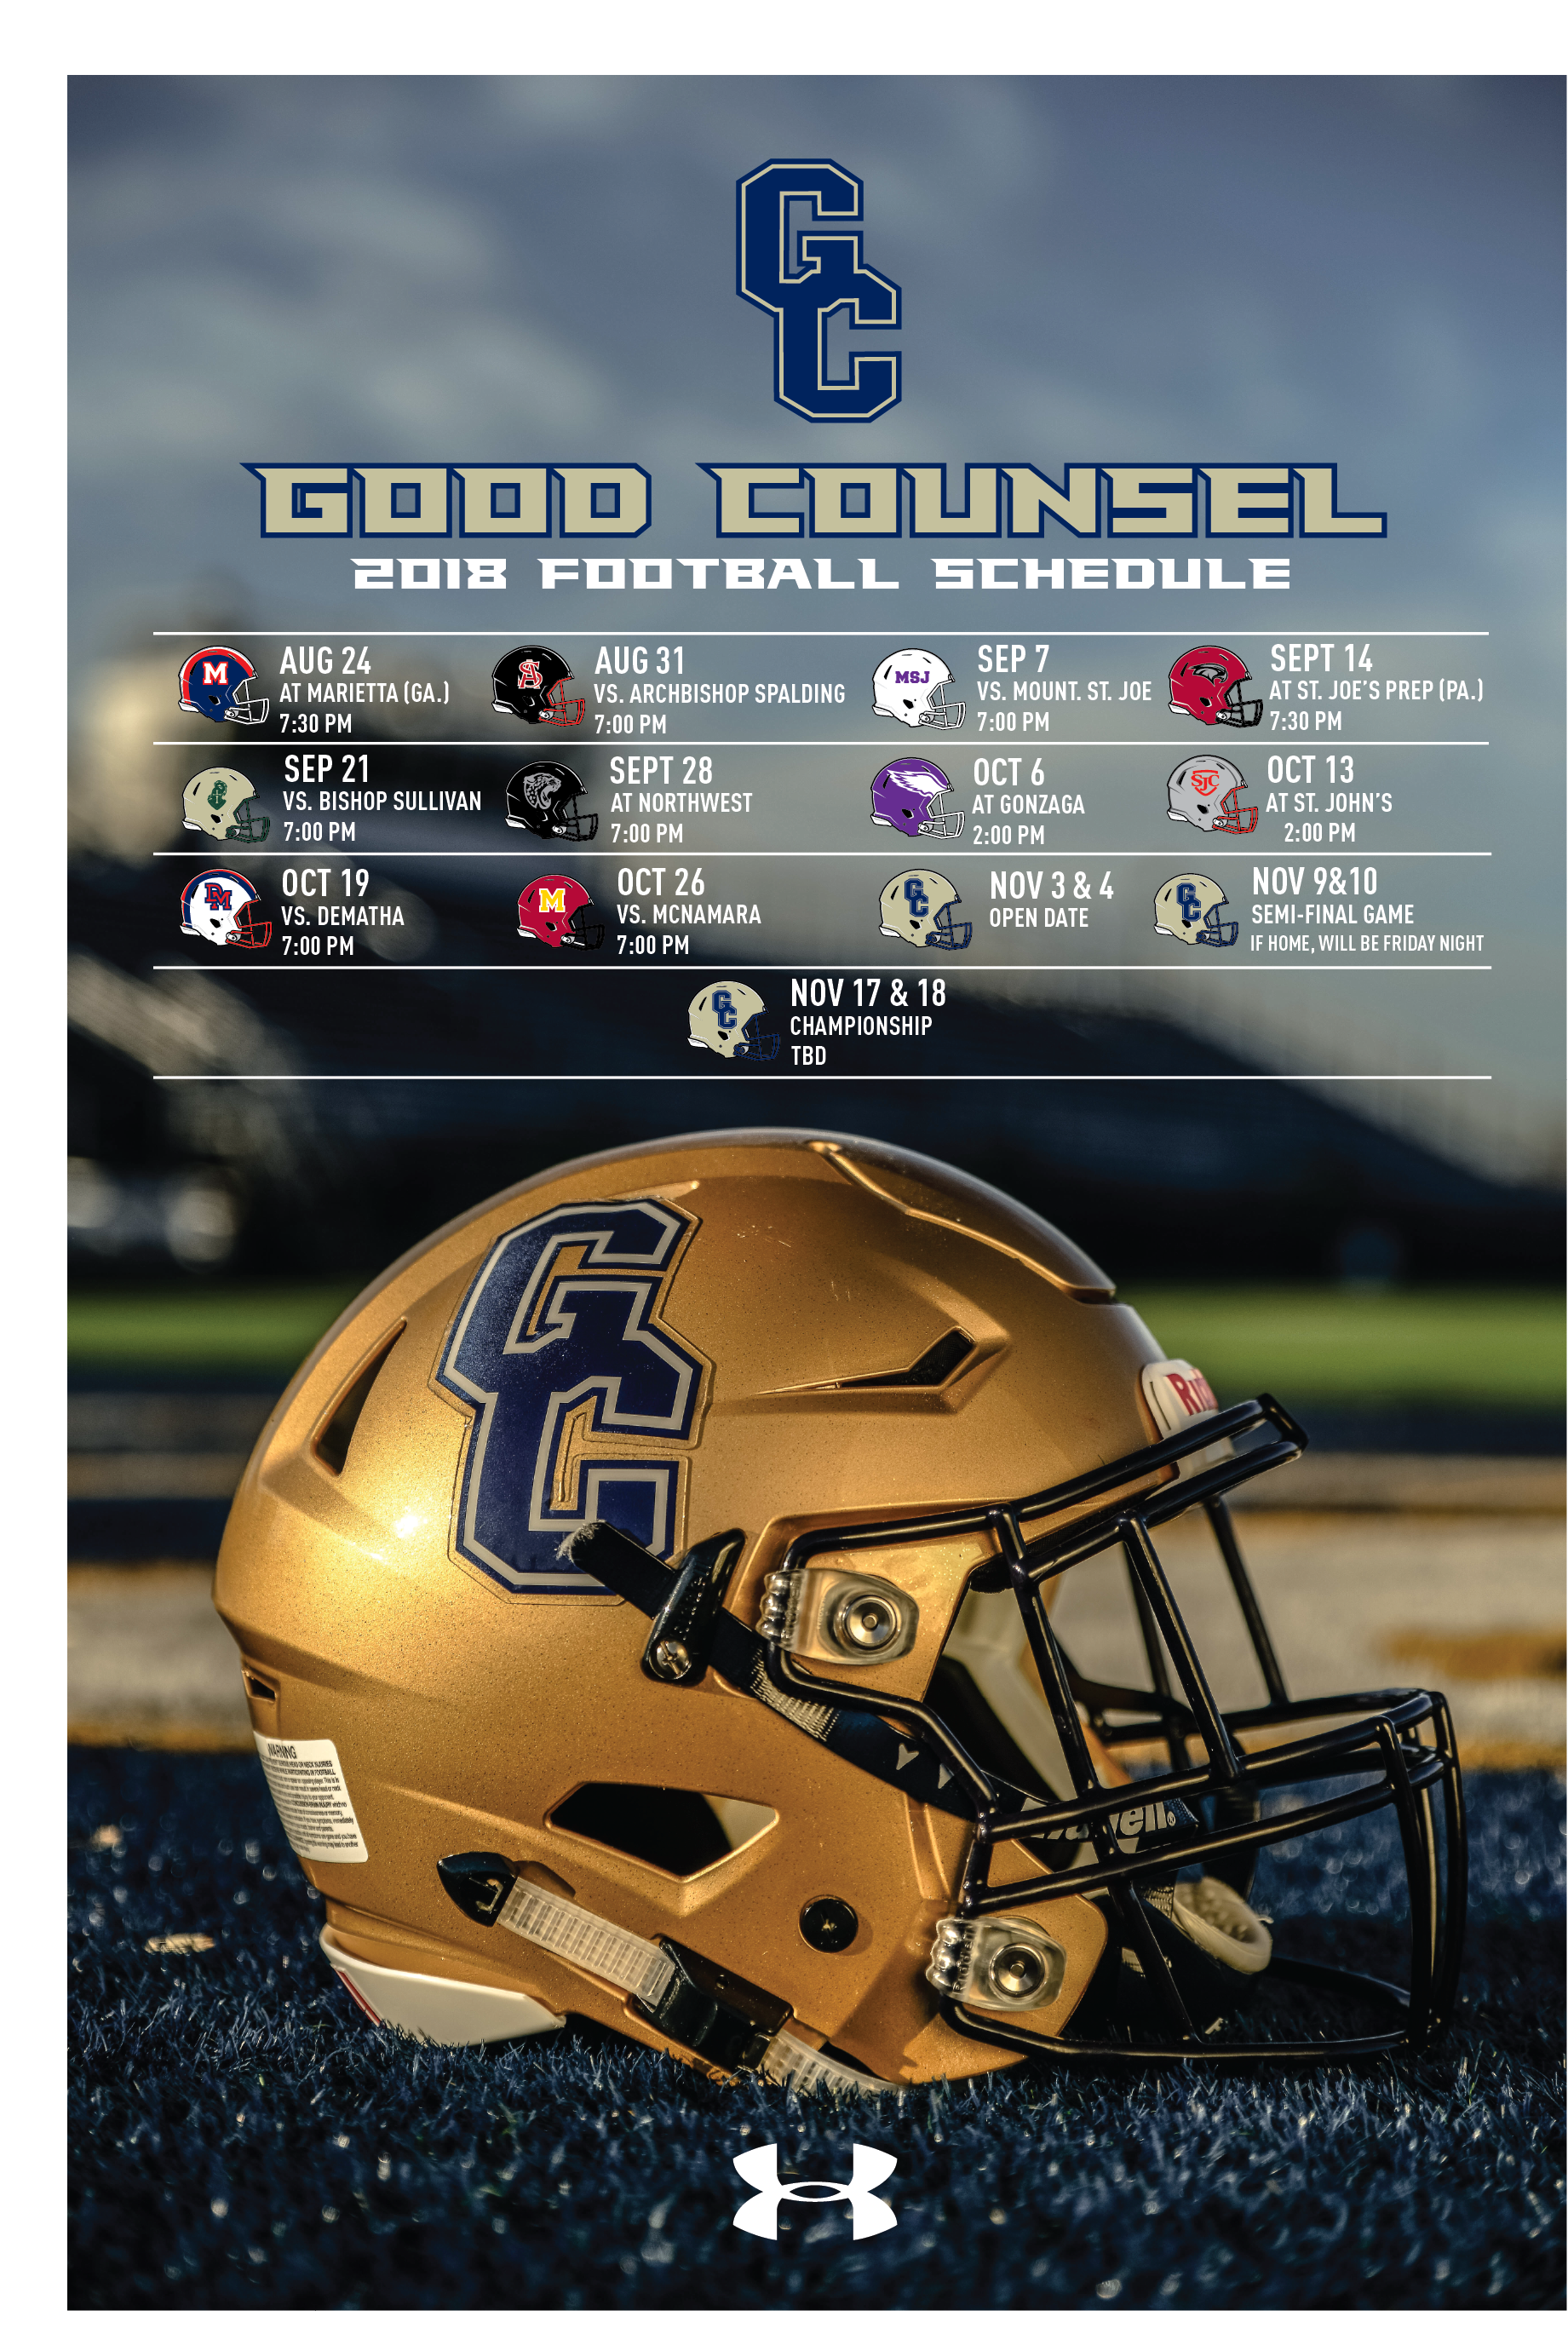 Football Our Lady Of Good Counsel High School Olney Md